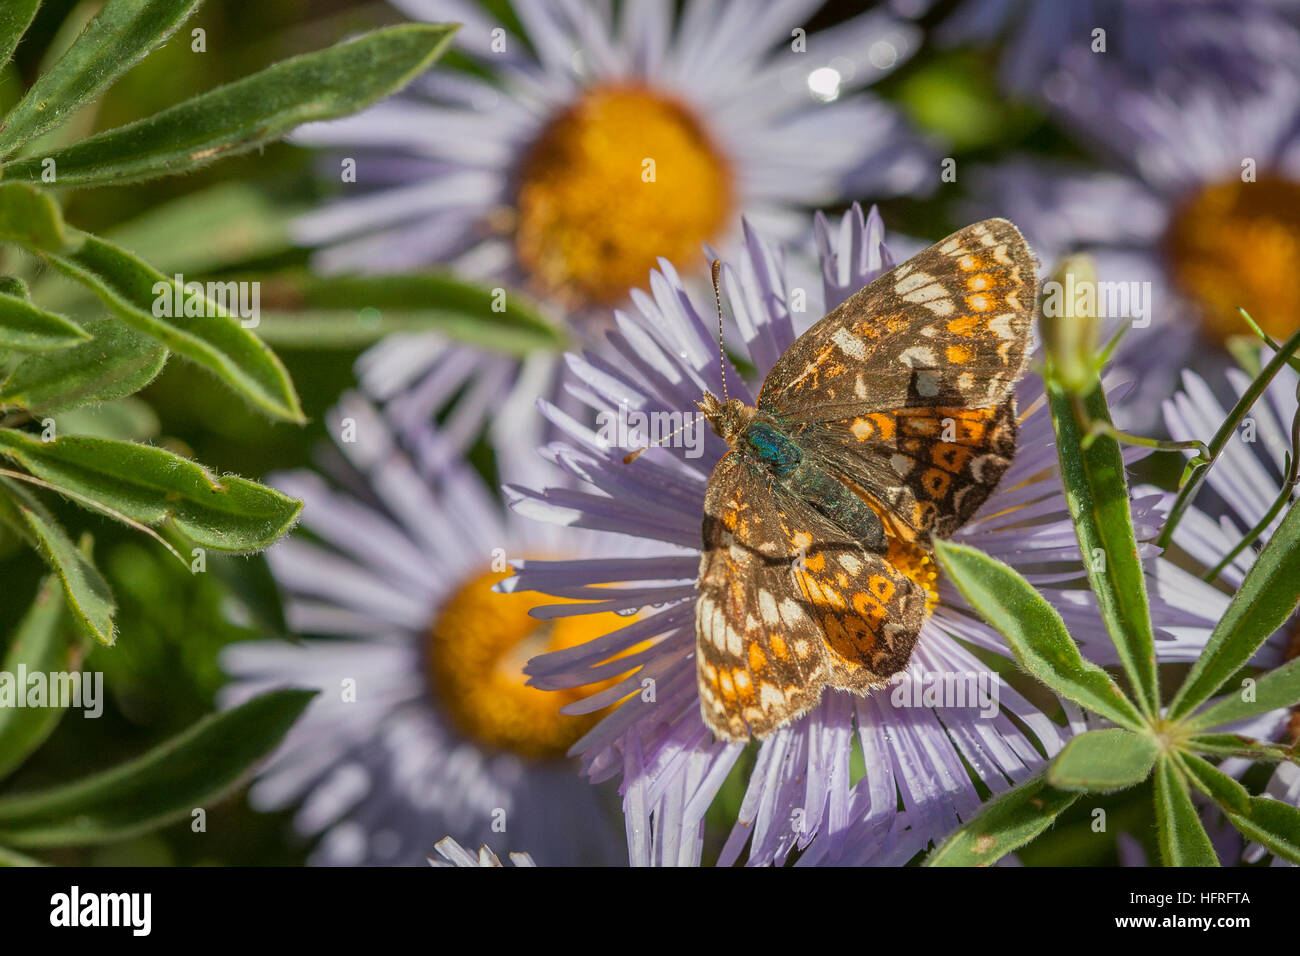 A butterfly on a purple aster flower. - Stock Image